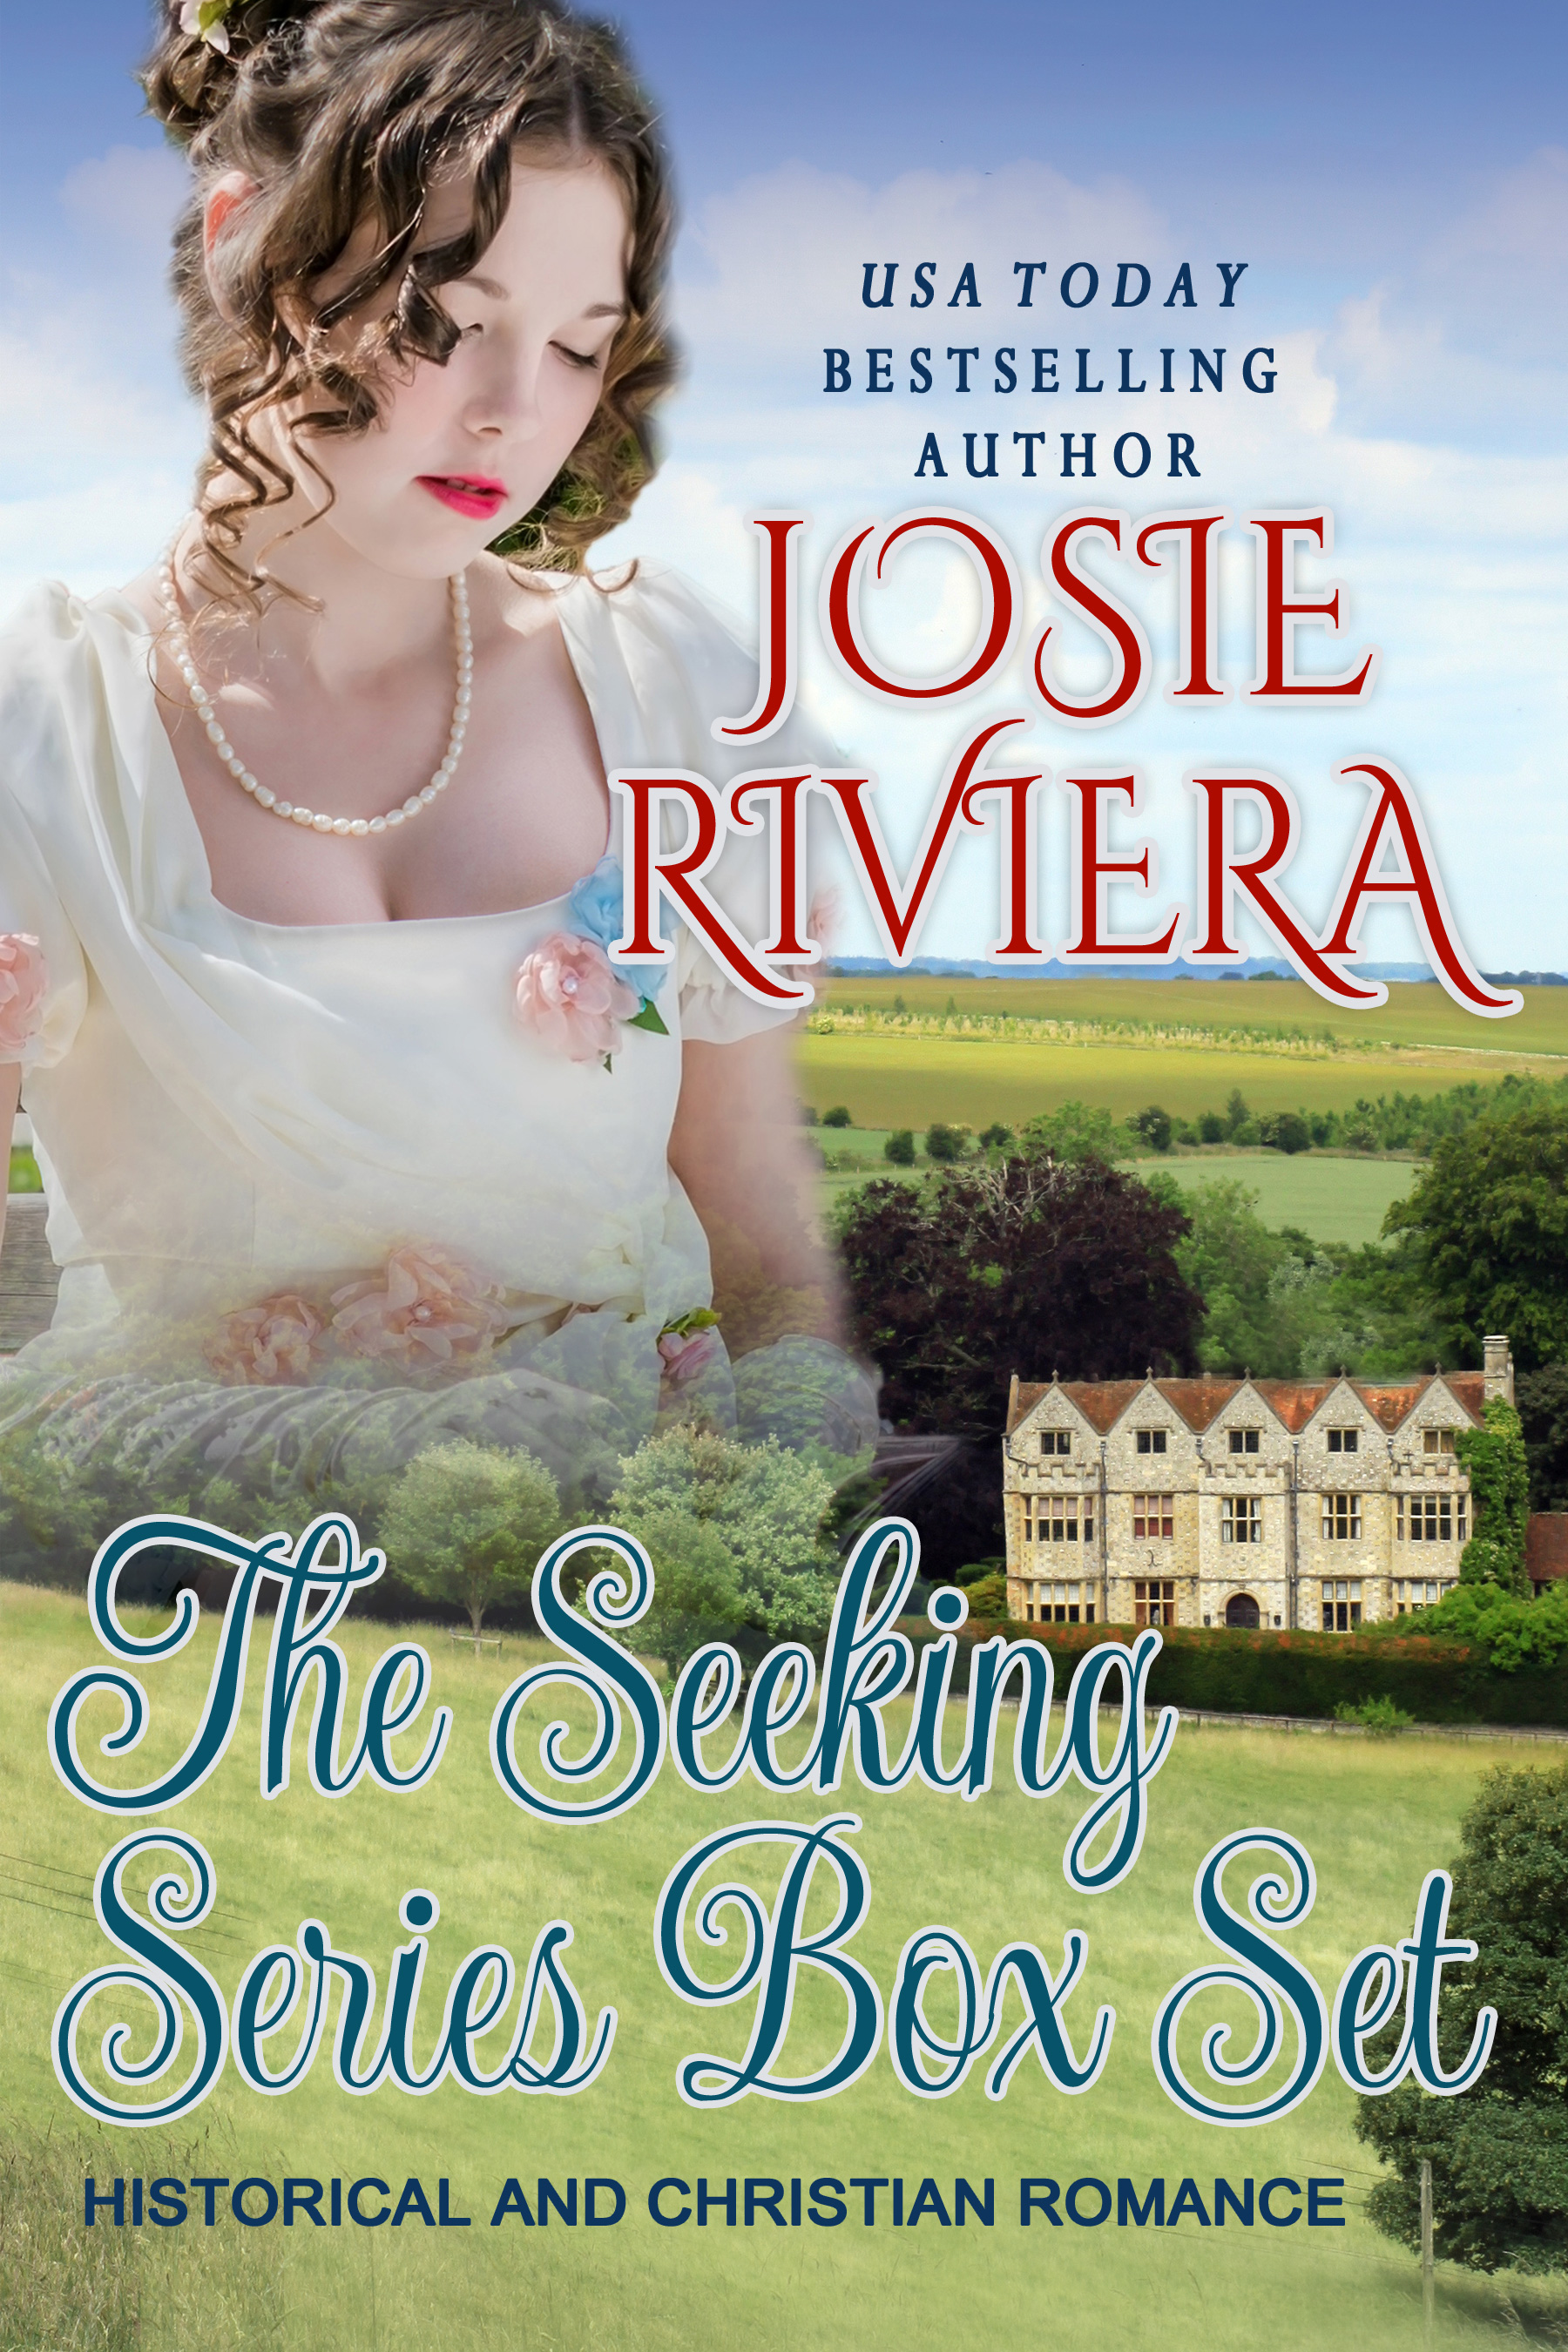 Historical and Christian Romance